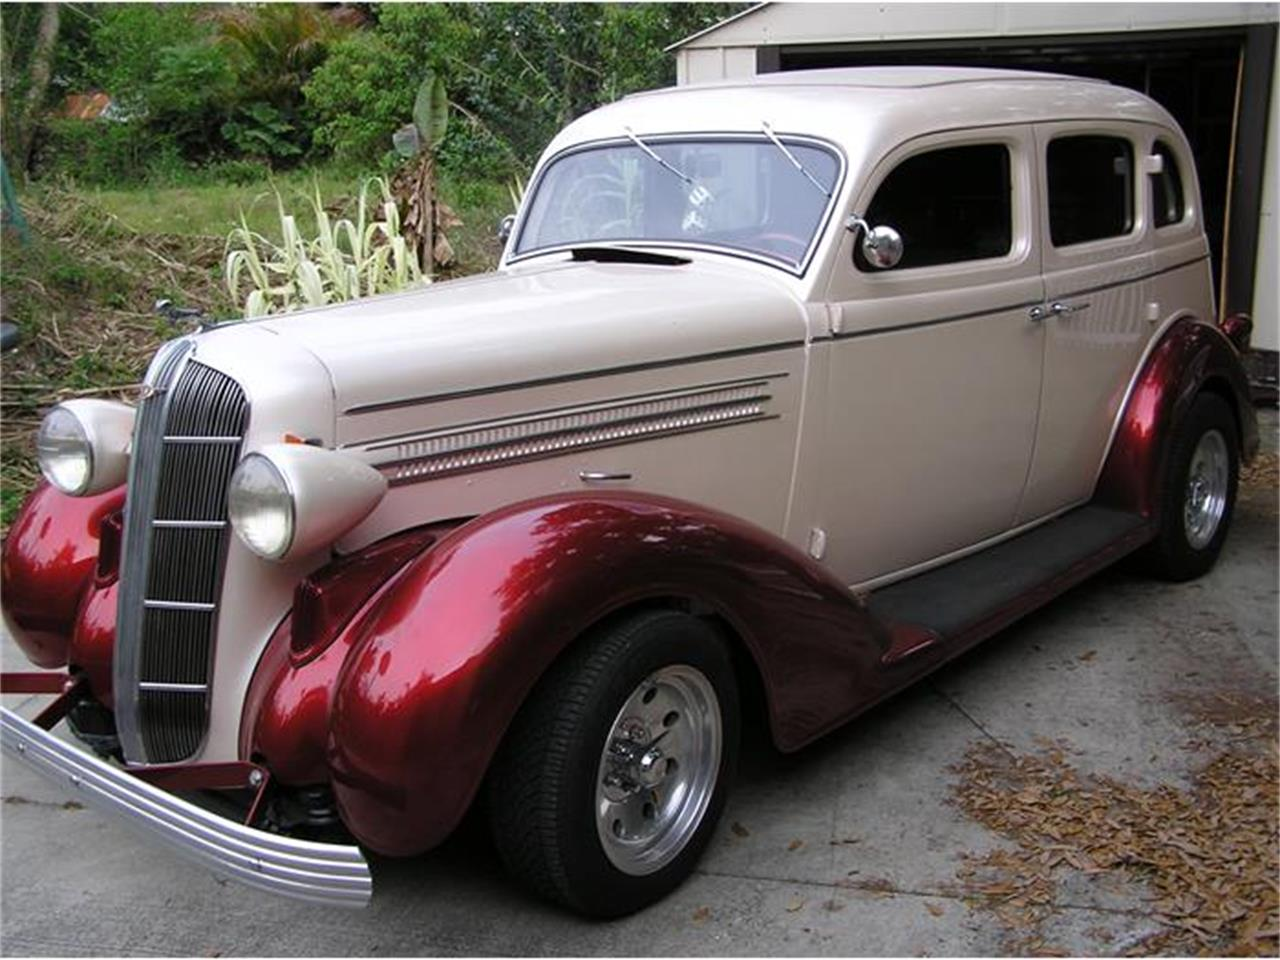 Large Picture of '36 Dodge 4-Dr Sedan located in Oviedo Florida - $29,000.00 Offered by a Private Seller - AN6I